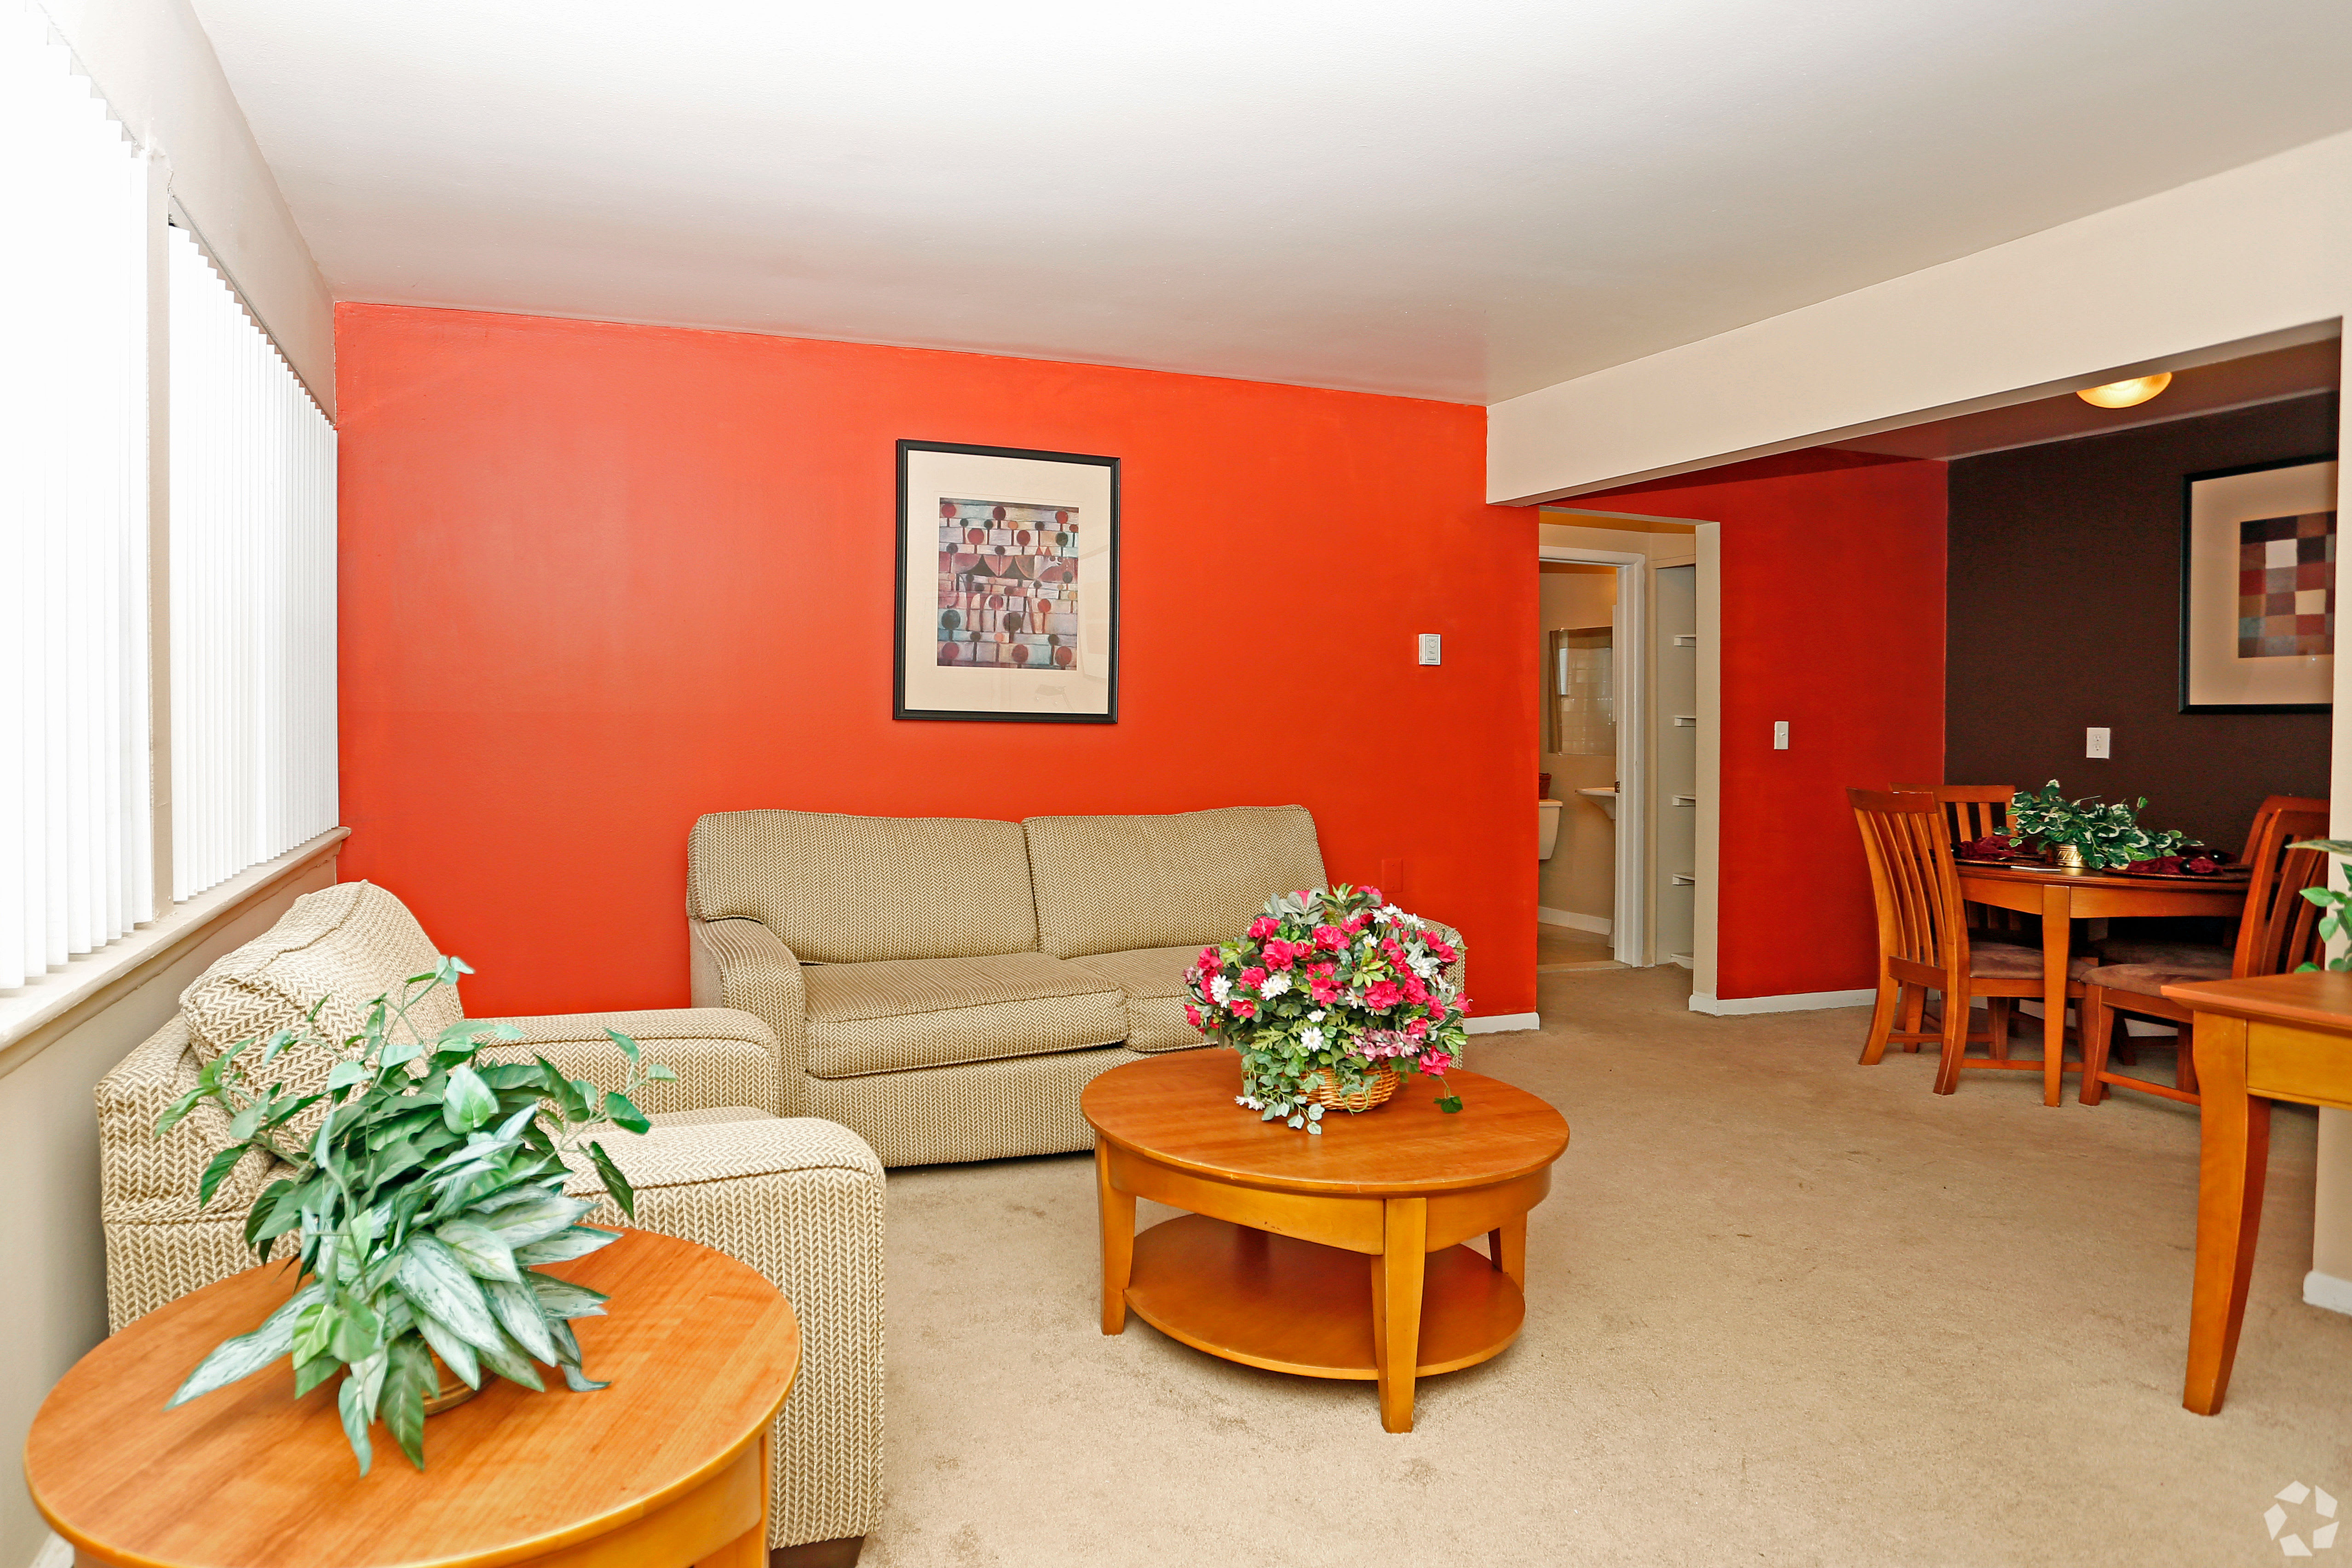 Spacious apartment with an open living room at Hoover Square Apartments in Warren, Michigan